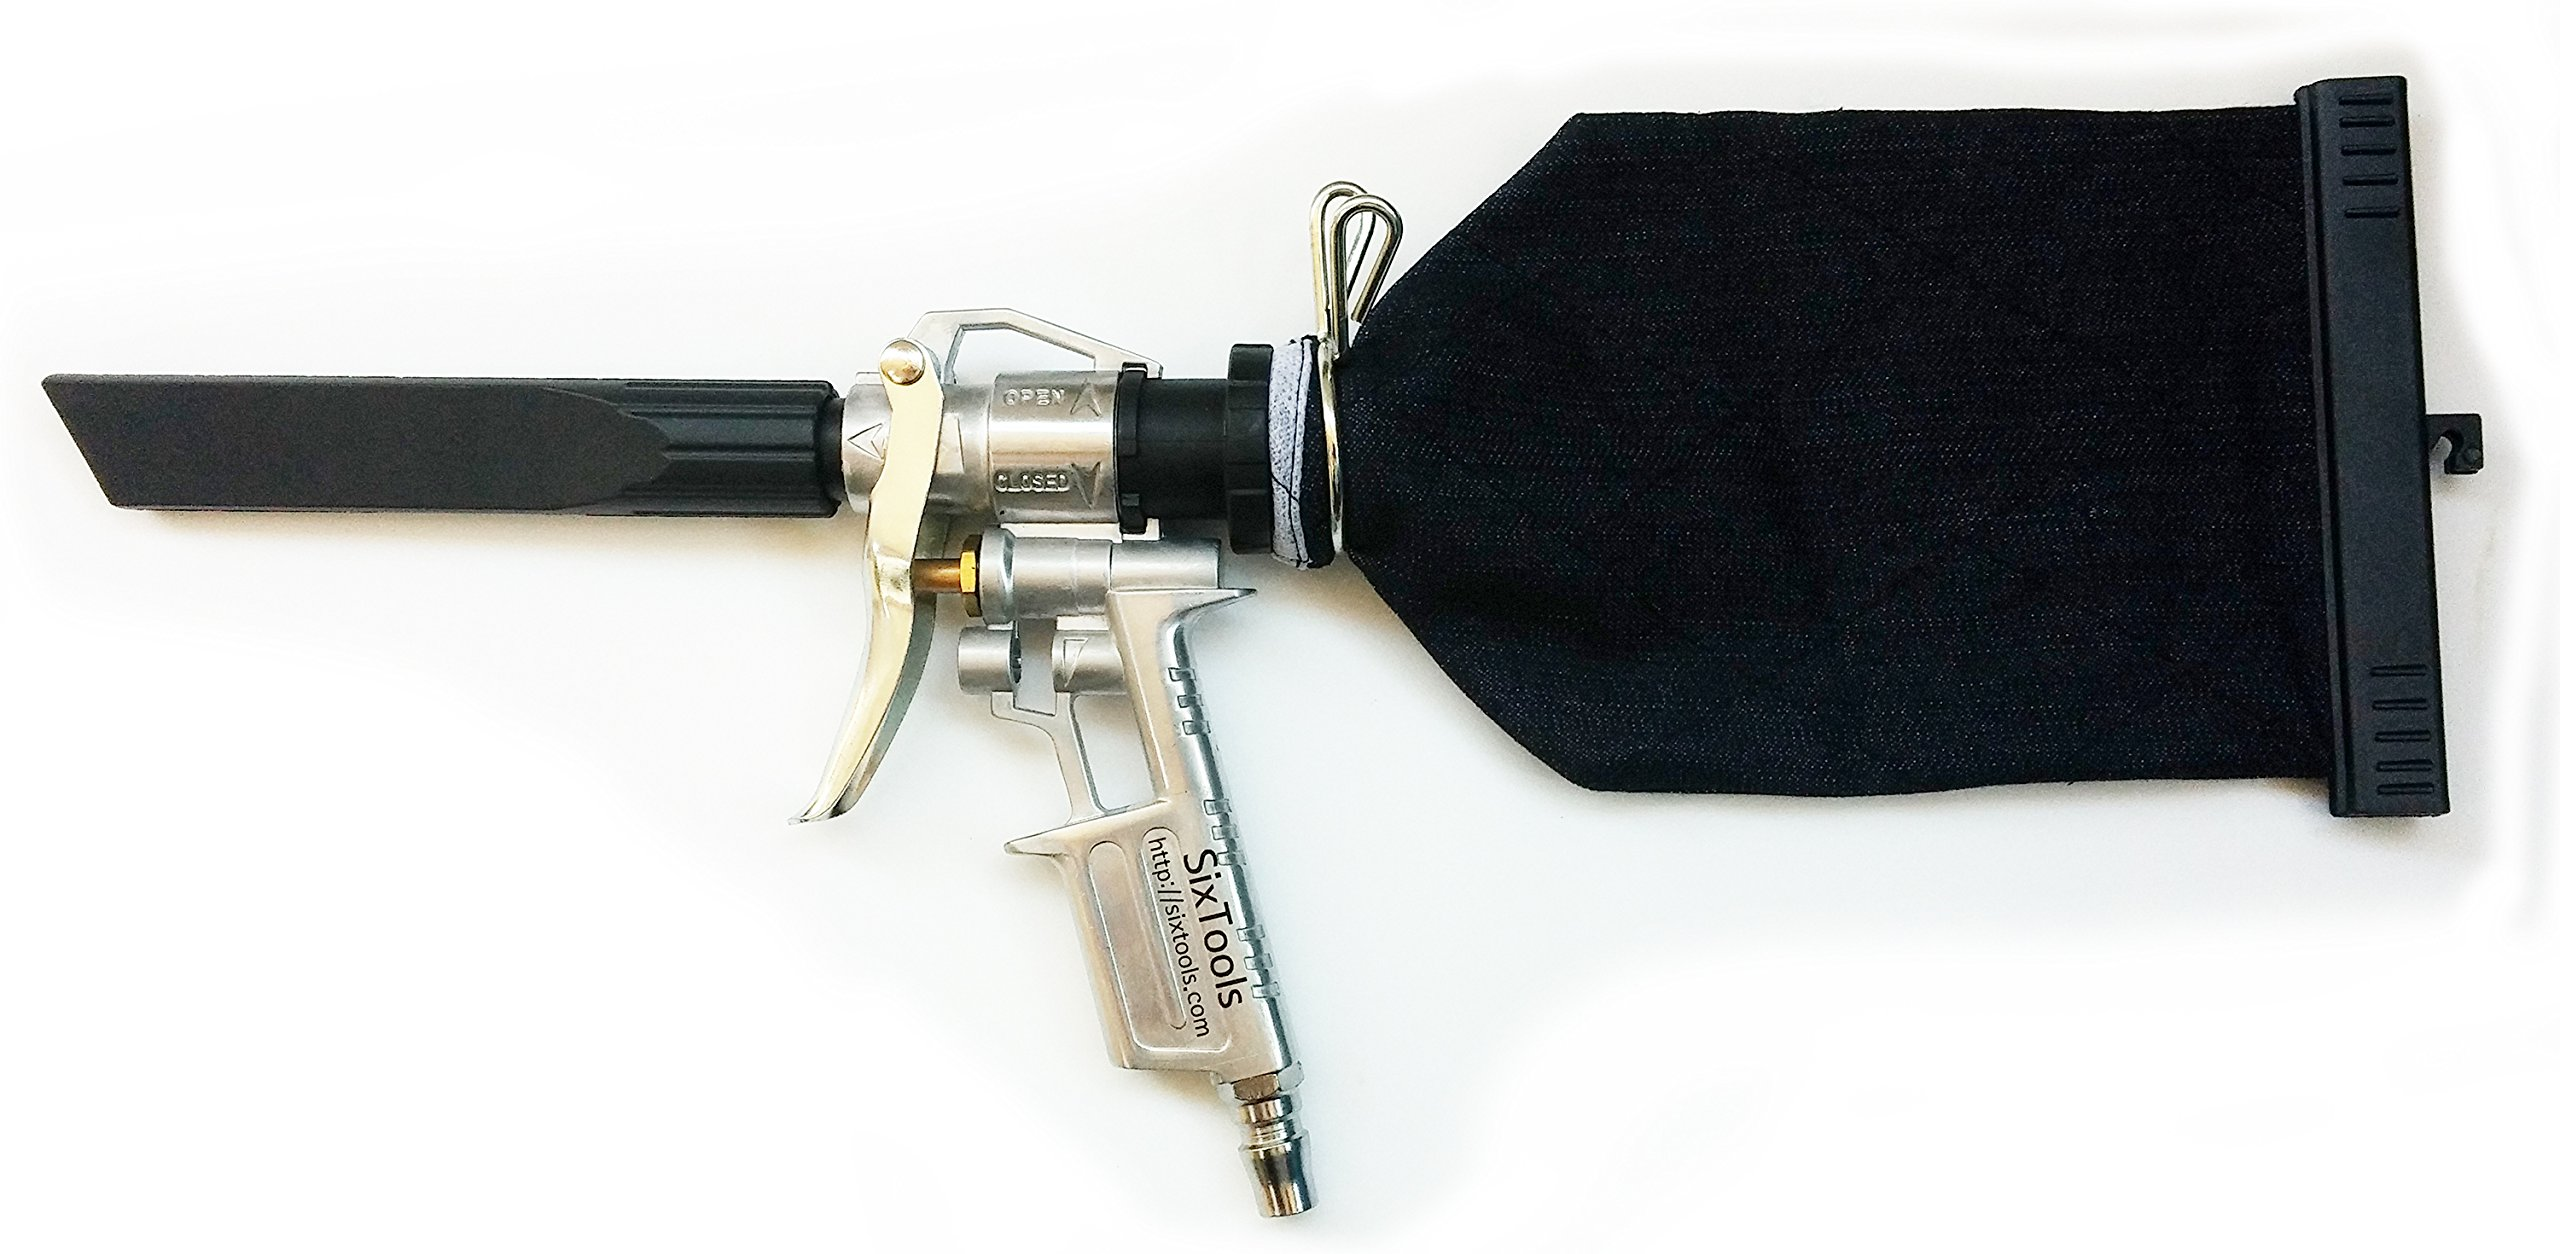 SixTools Air Vacuum Dust Suction Cleaner Gun